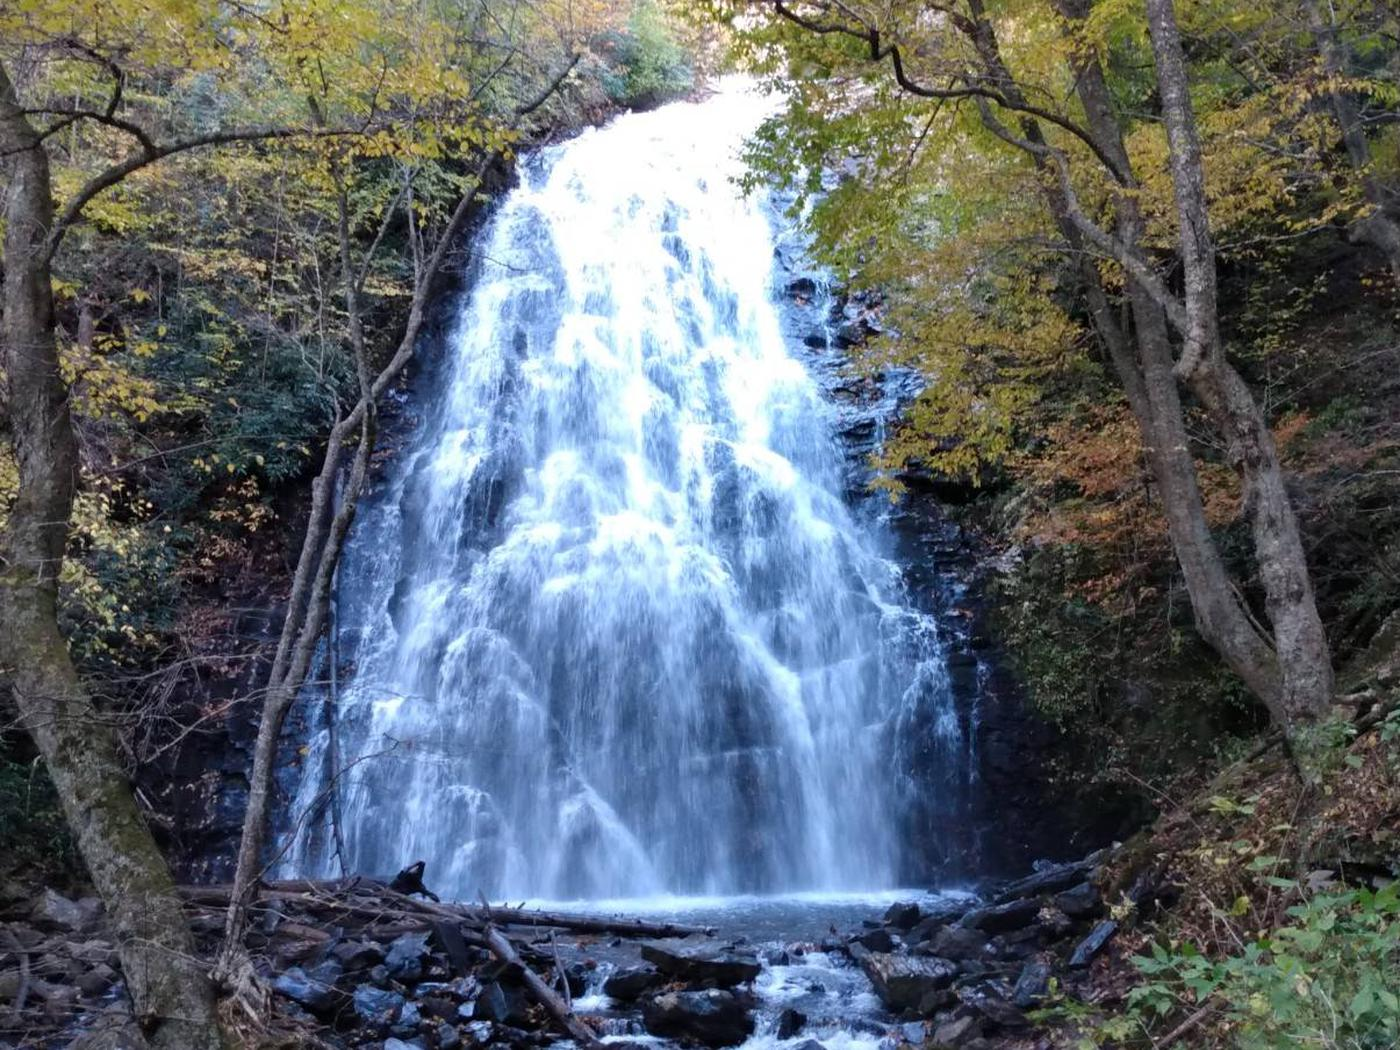 Crabtree Falls  - a 70 ft. waterfall.Beautiful Crabtree Falls plunges 70 feet and is accessible from the campground.